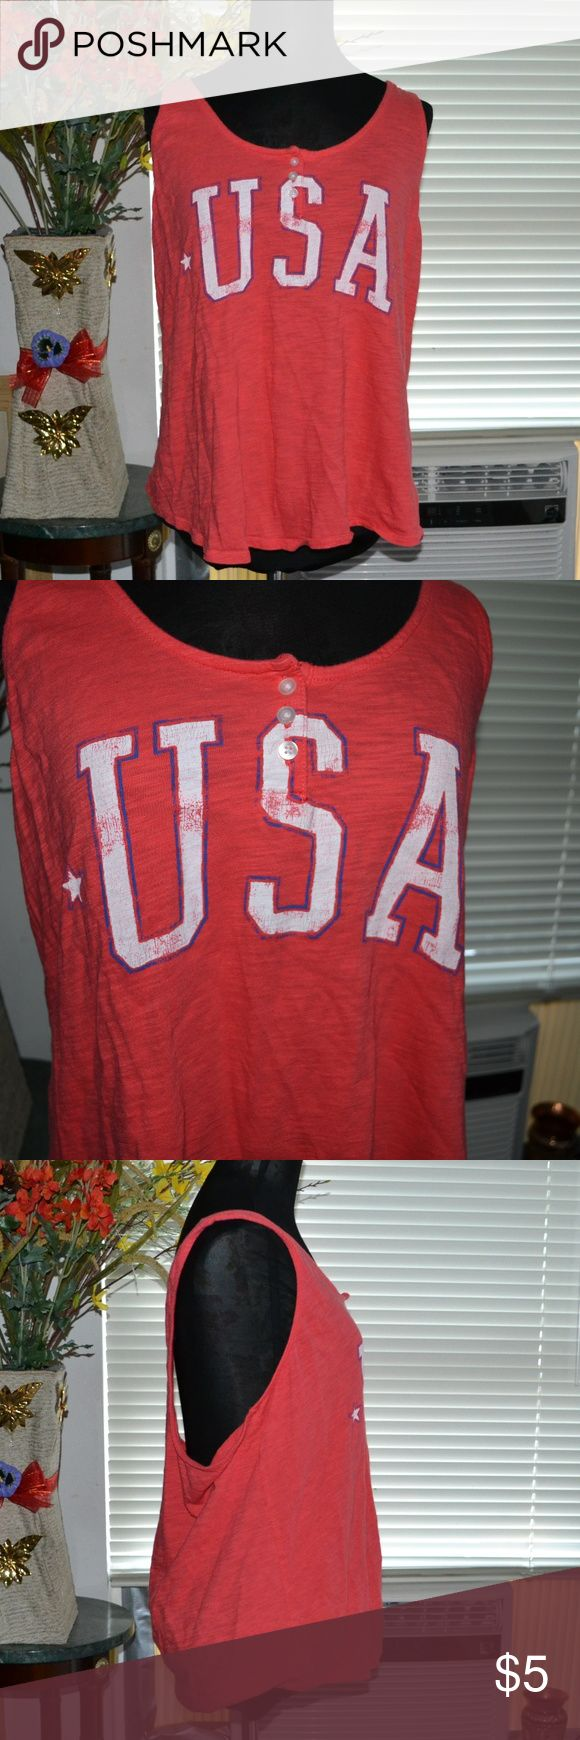 Old navy USA tank top I ship Monday- Friday (sometimes Saturday!) Smoke free home.   A super cute old navy tank top size xlarge in good condition has some minor pilling. 100% cotton. Old Navy Tops Tank Tops